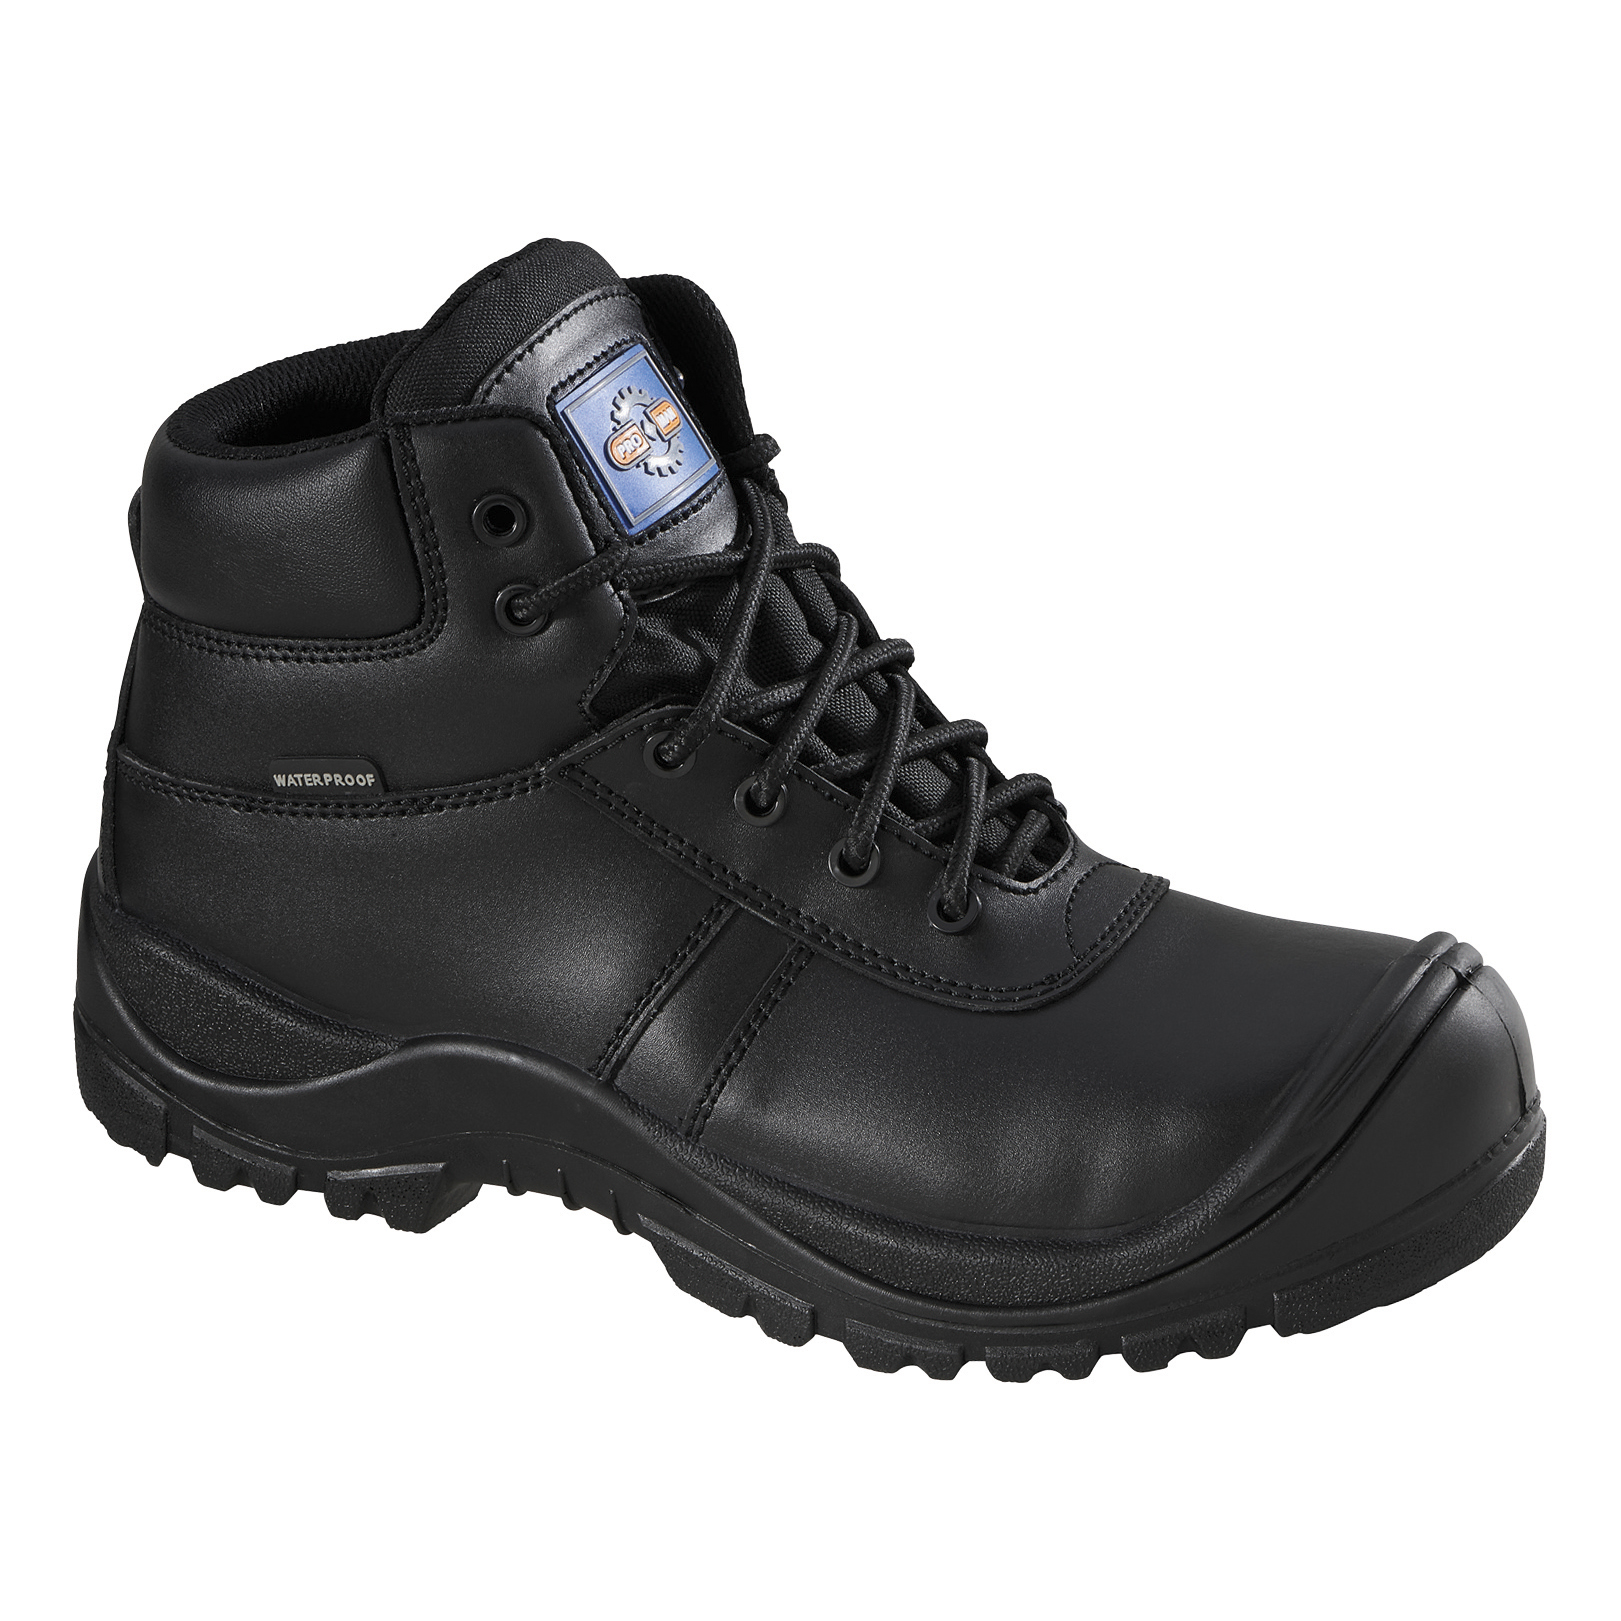 Rockfall Proman Boot Leather Waterproof 100% Non-Metallic Size 13 Black Ref PM4008-13 5-7 Day Leadtime